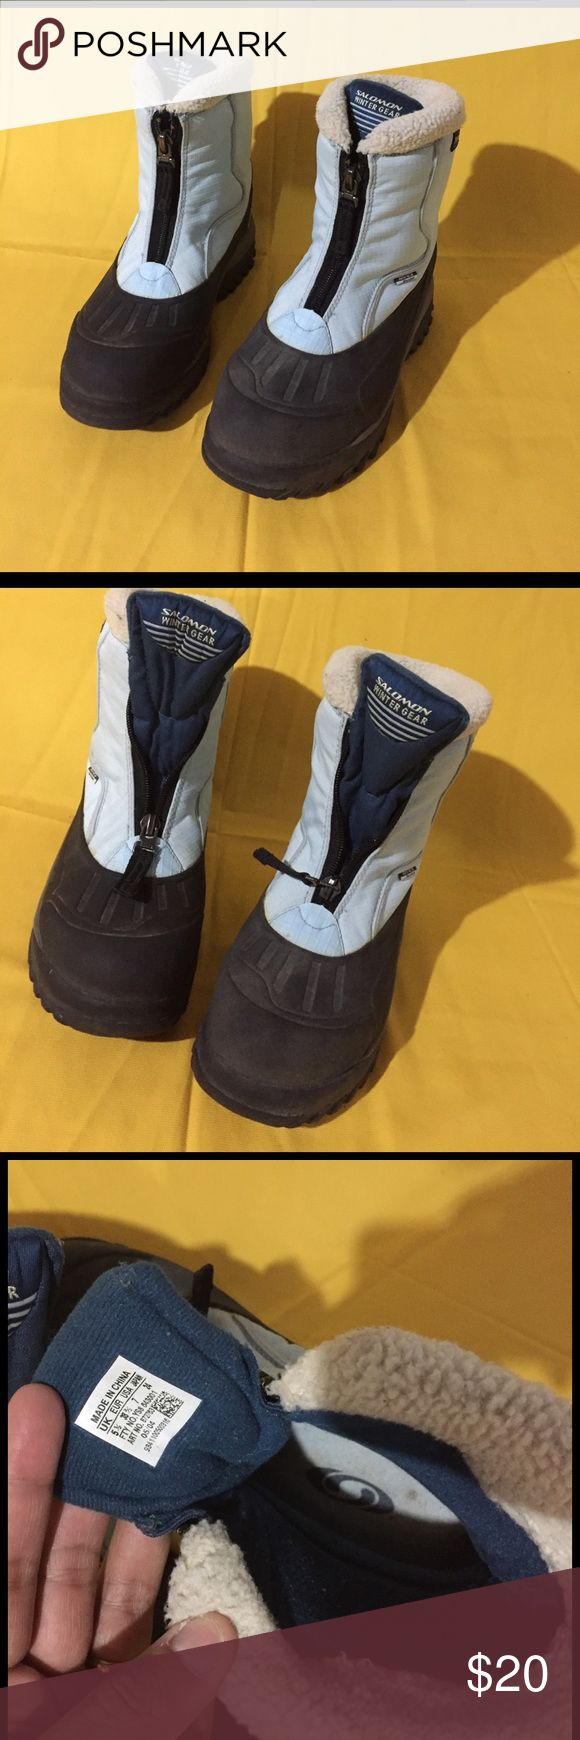 SALOMON WINTER GEAR water resistant Boots Women's size 7 - Boots in great used condition. Lots of grip on them.😊👍🏽 Salomon Shoes Winter & Rain Boots